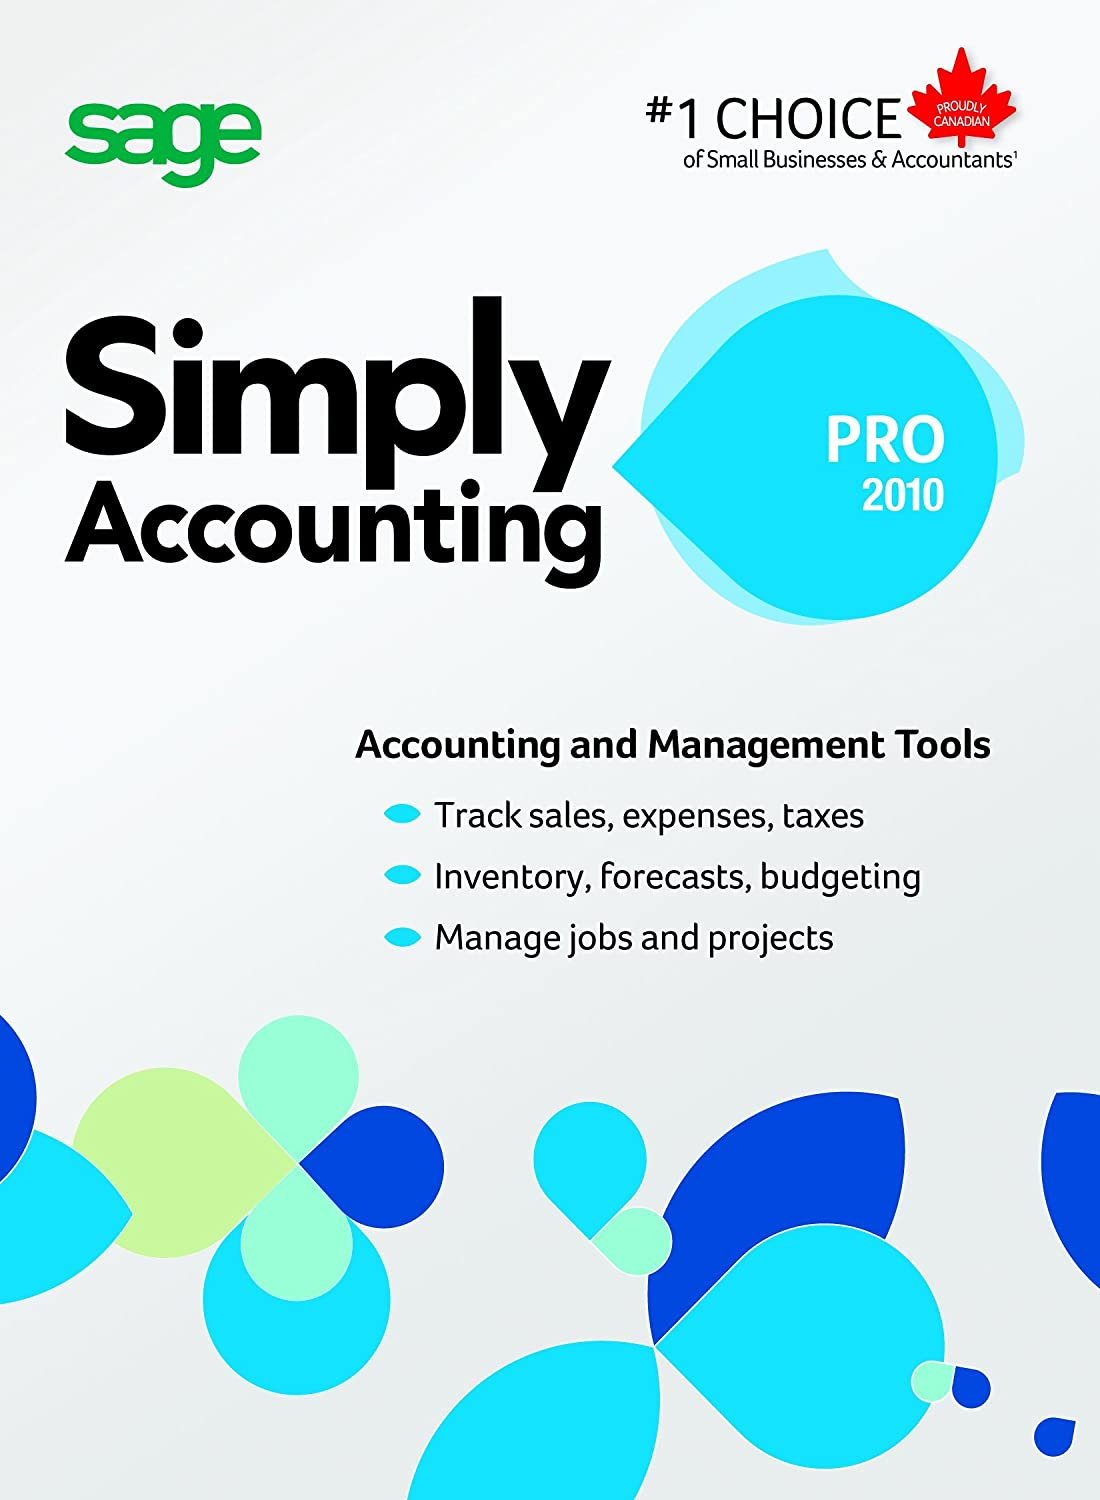 Simply Accounting by Sage Pro 2010